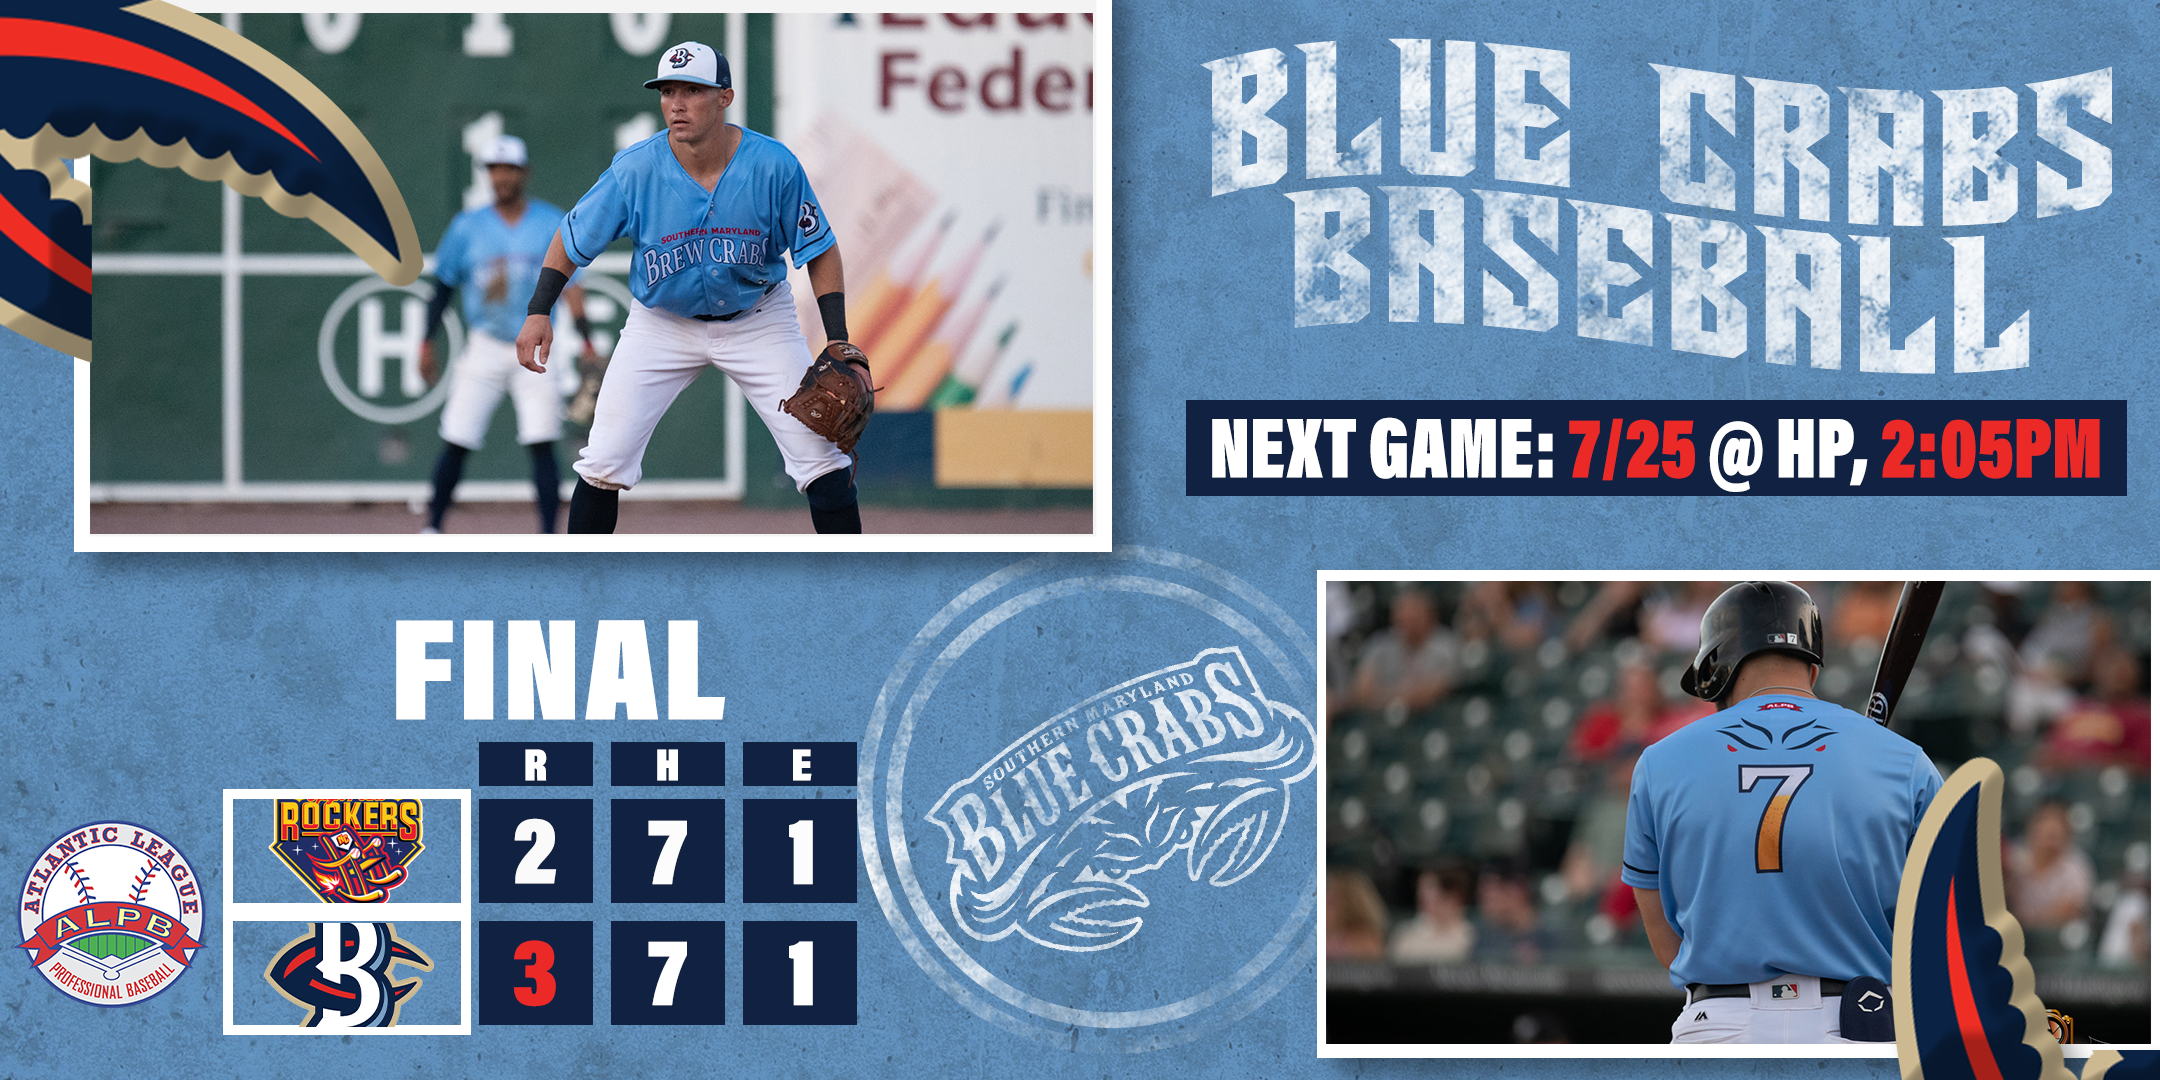 Carl Brice Fans Eight in Crabs Debut, Defeating Rockers 3-2